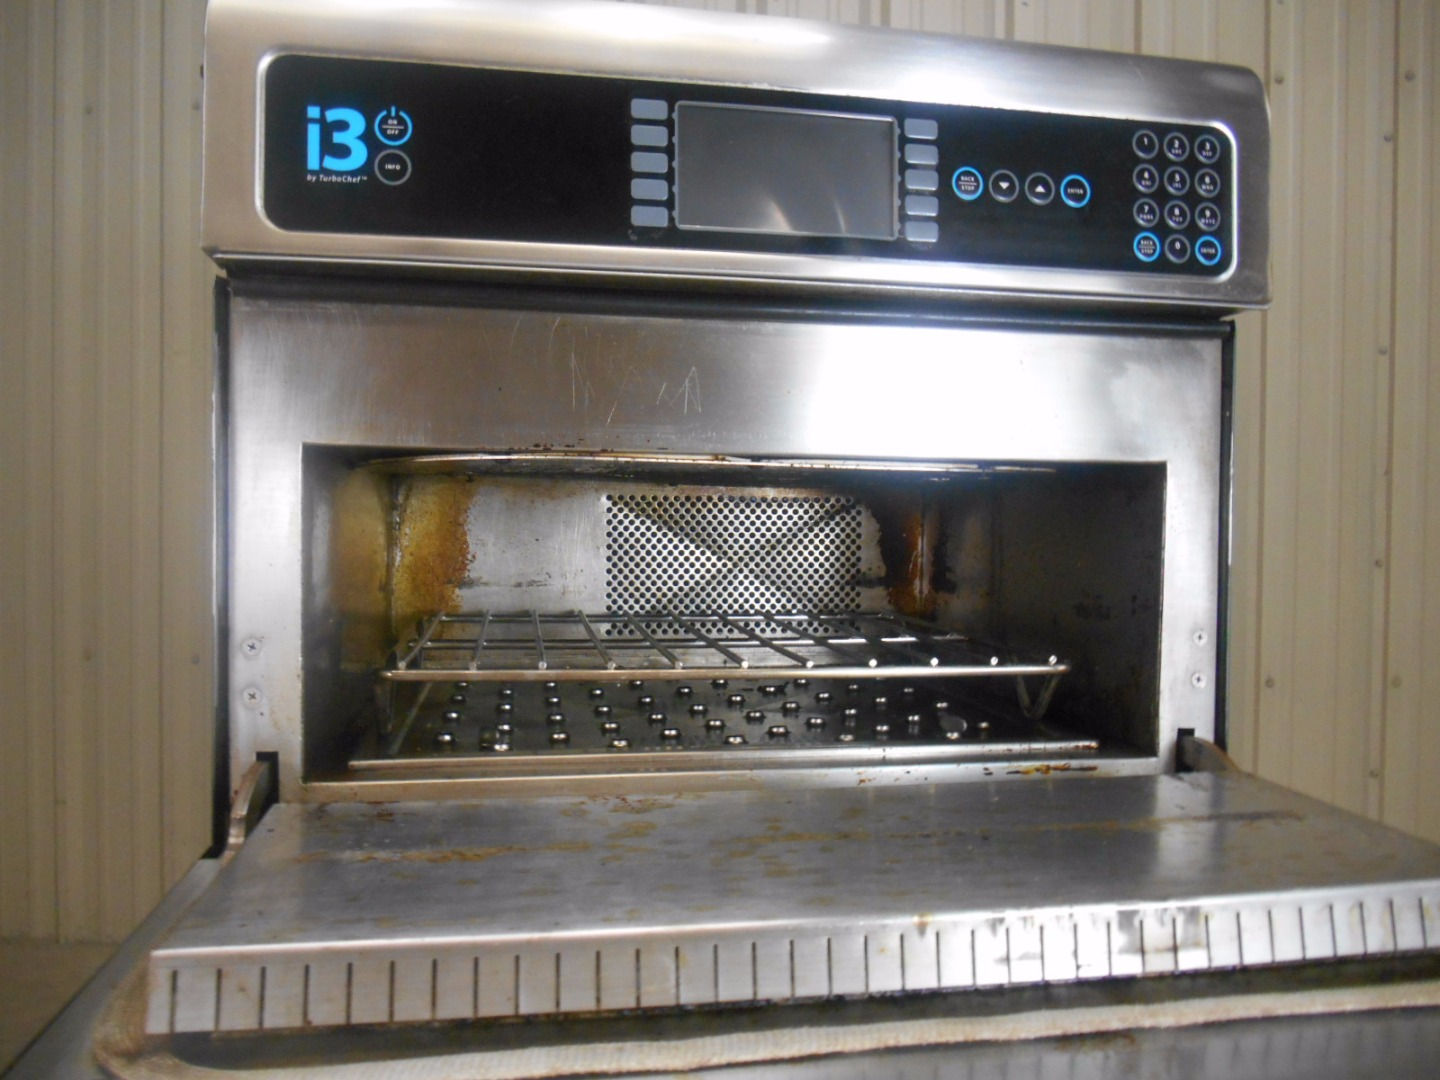 Used Turbochef I3 2011 Convection Microwave Rapid Cook